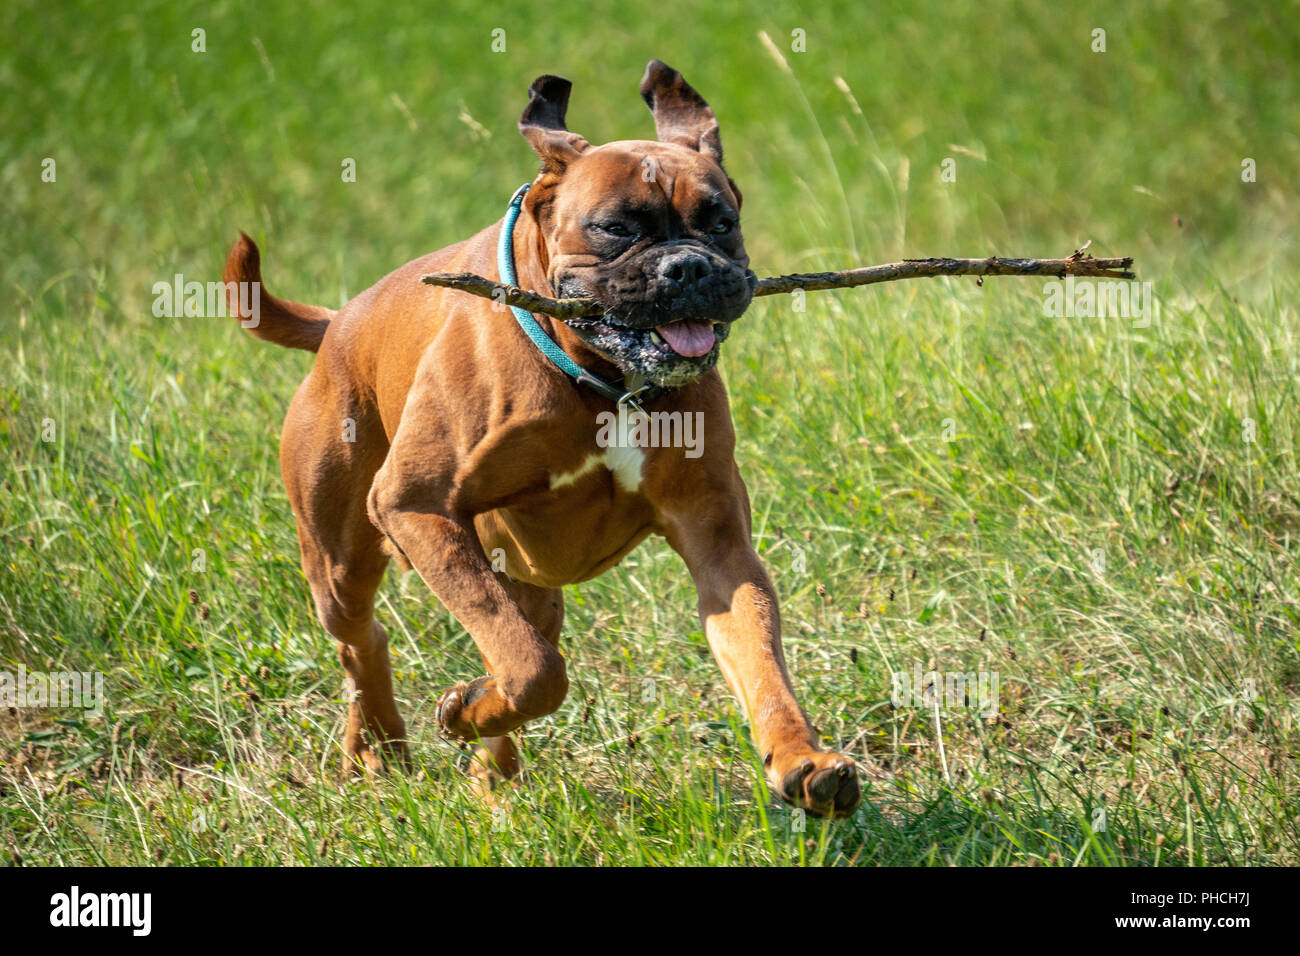 Trieste, Italy, 19 August 2018. A boxer dog (German boxer) retrieves a wooden stick.  Photo by Enrique Shore - Stock Image